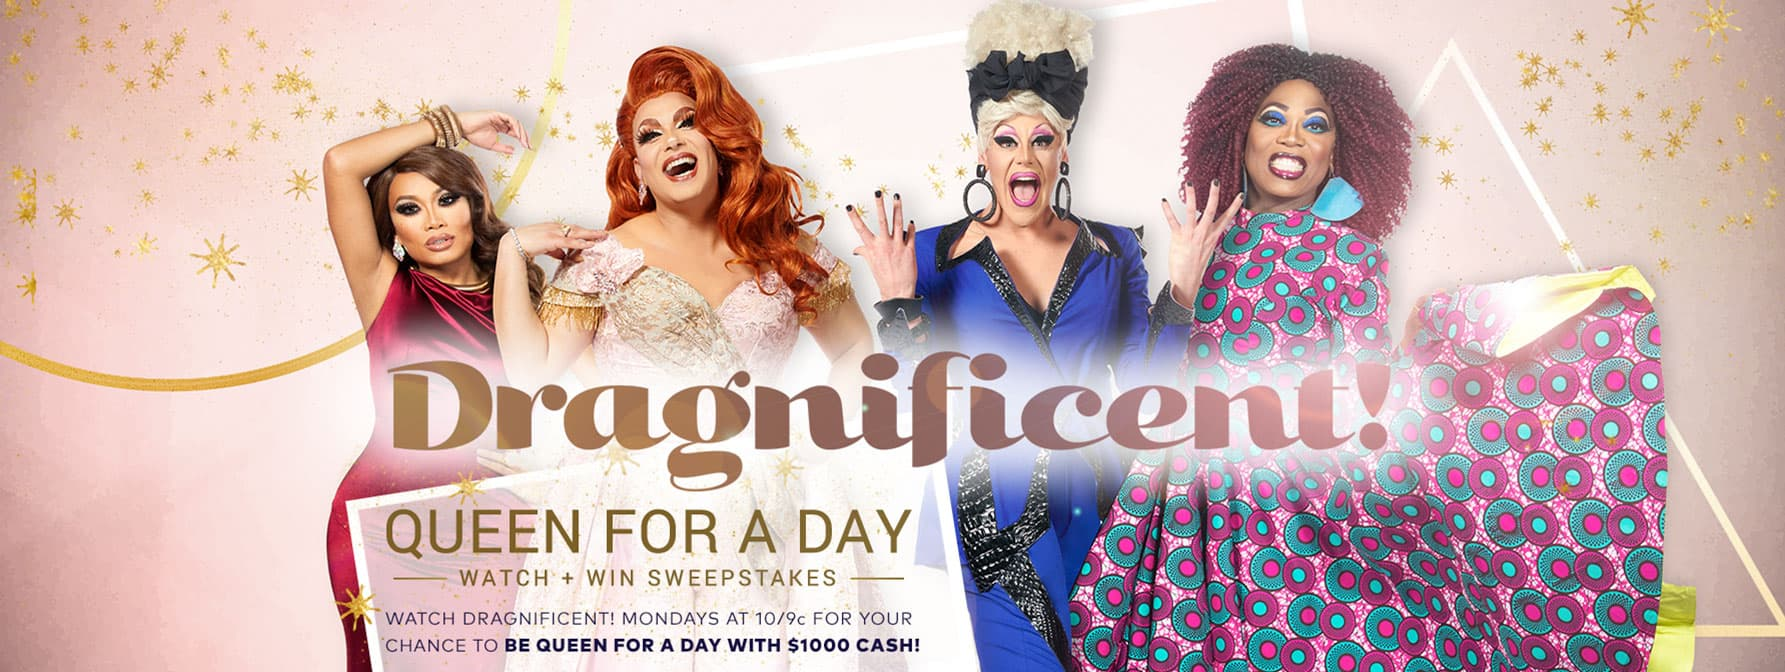 TLC Dragnificent Queen for a Day Sweepstakes 2020